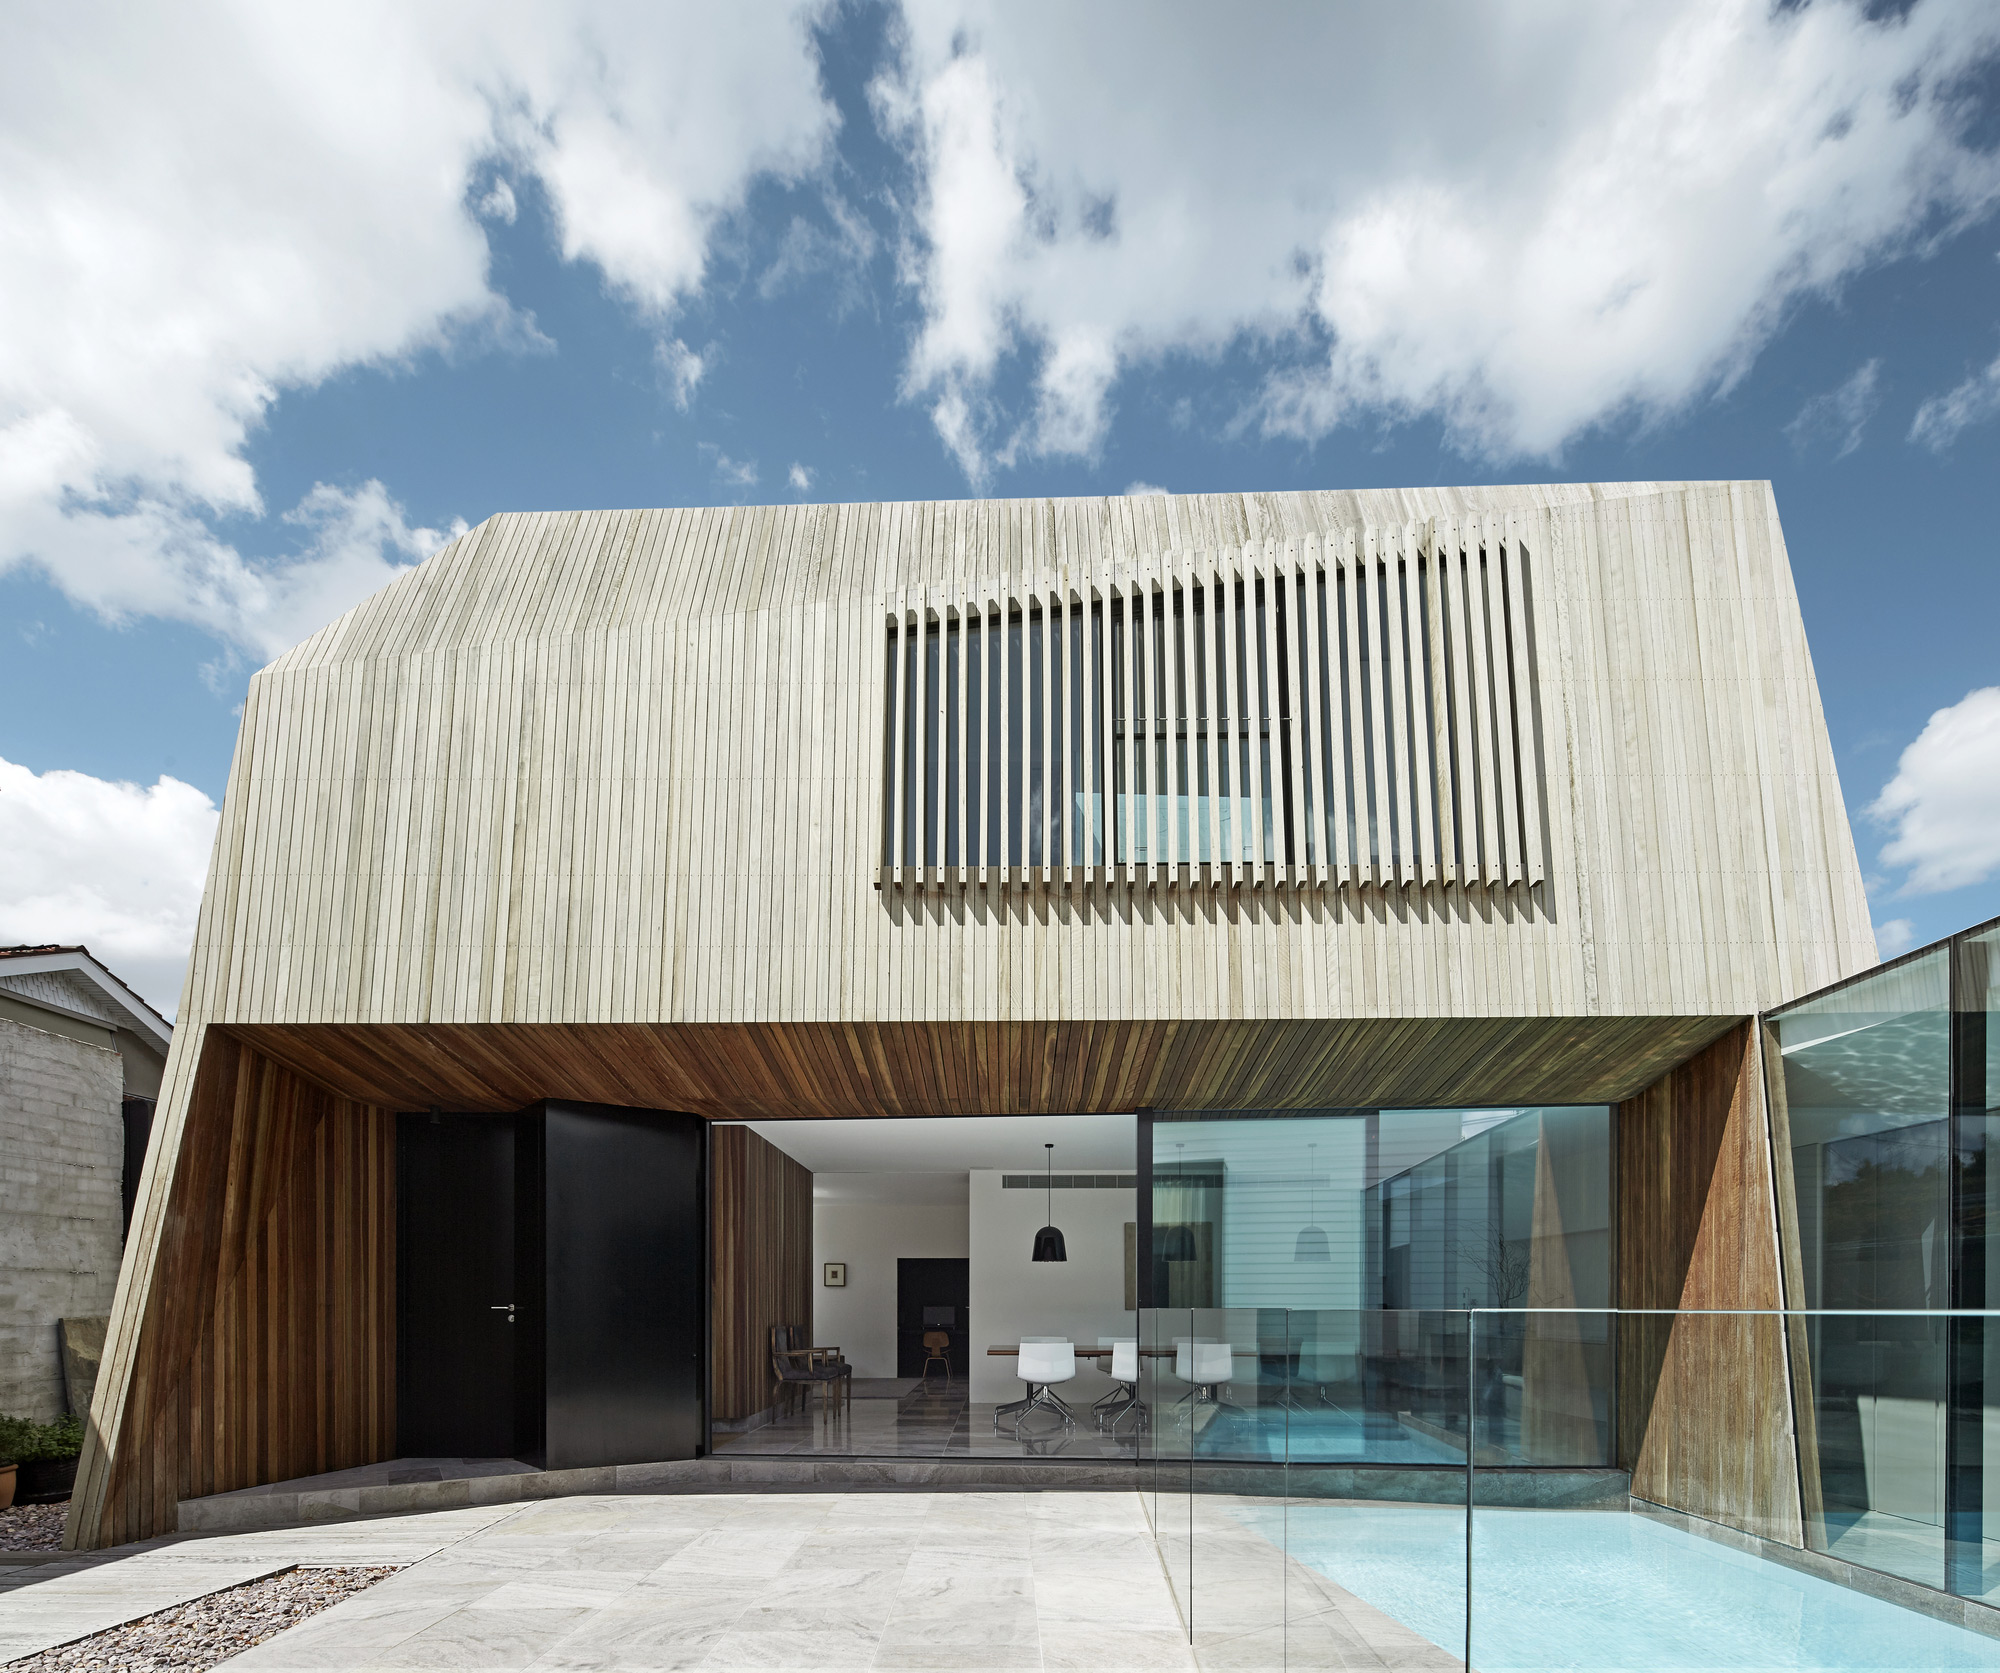 House 3 / Coy Yiontis Architects (20)